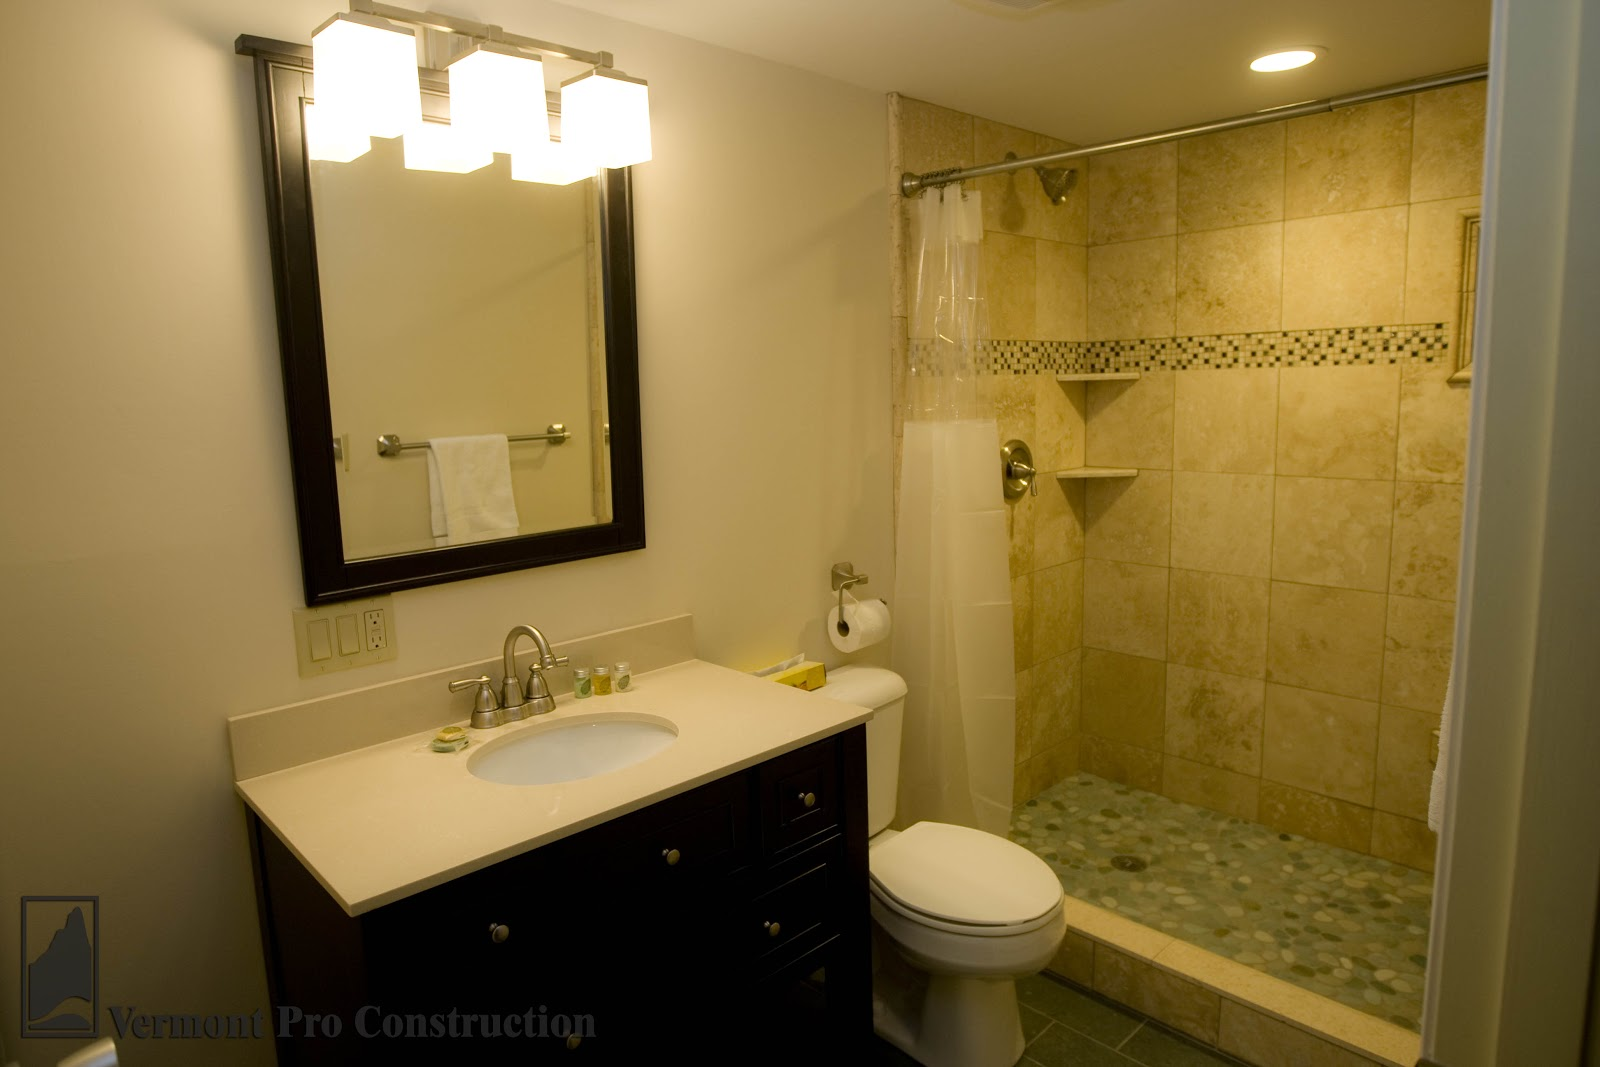 Vermont professional construction painting llc tolchin bathroom remodel - Remodel bathroom designs ...